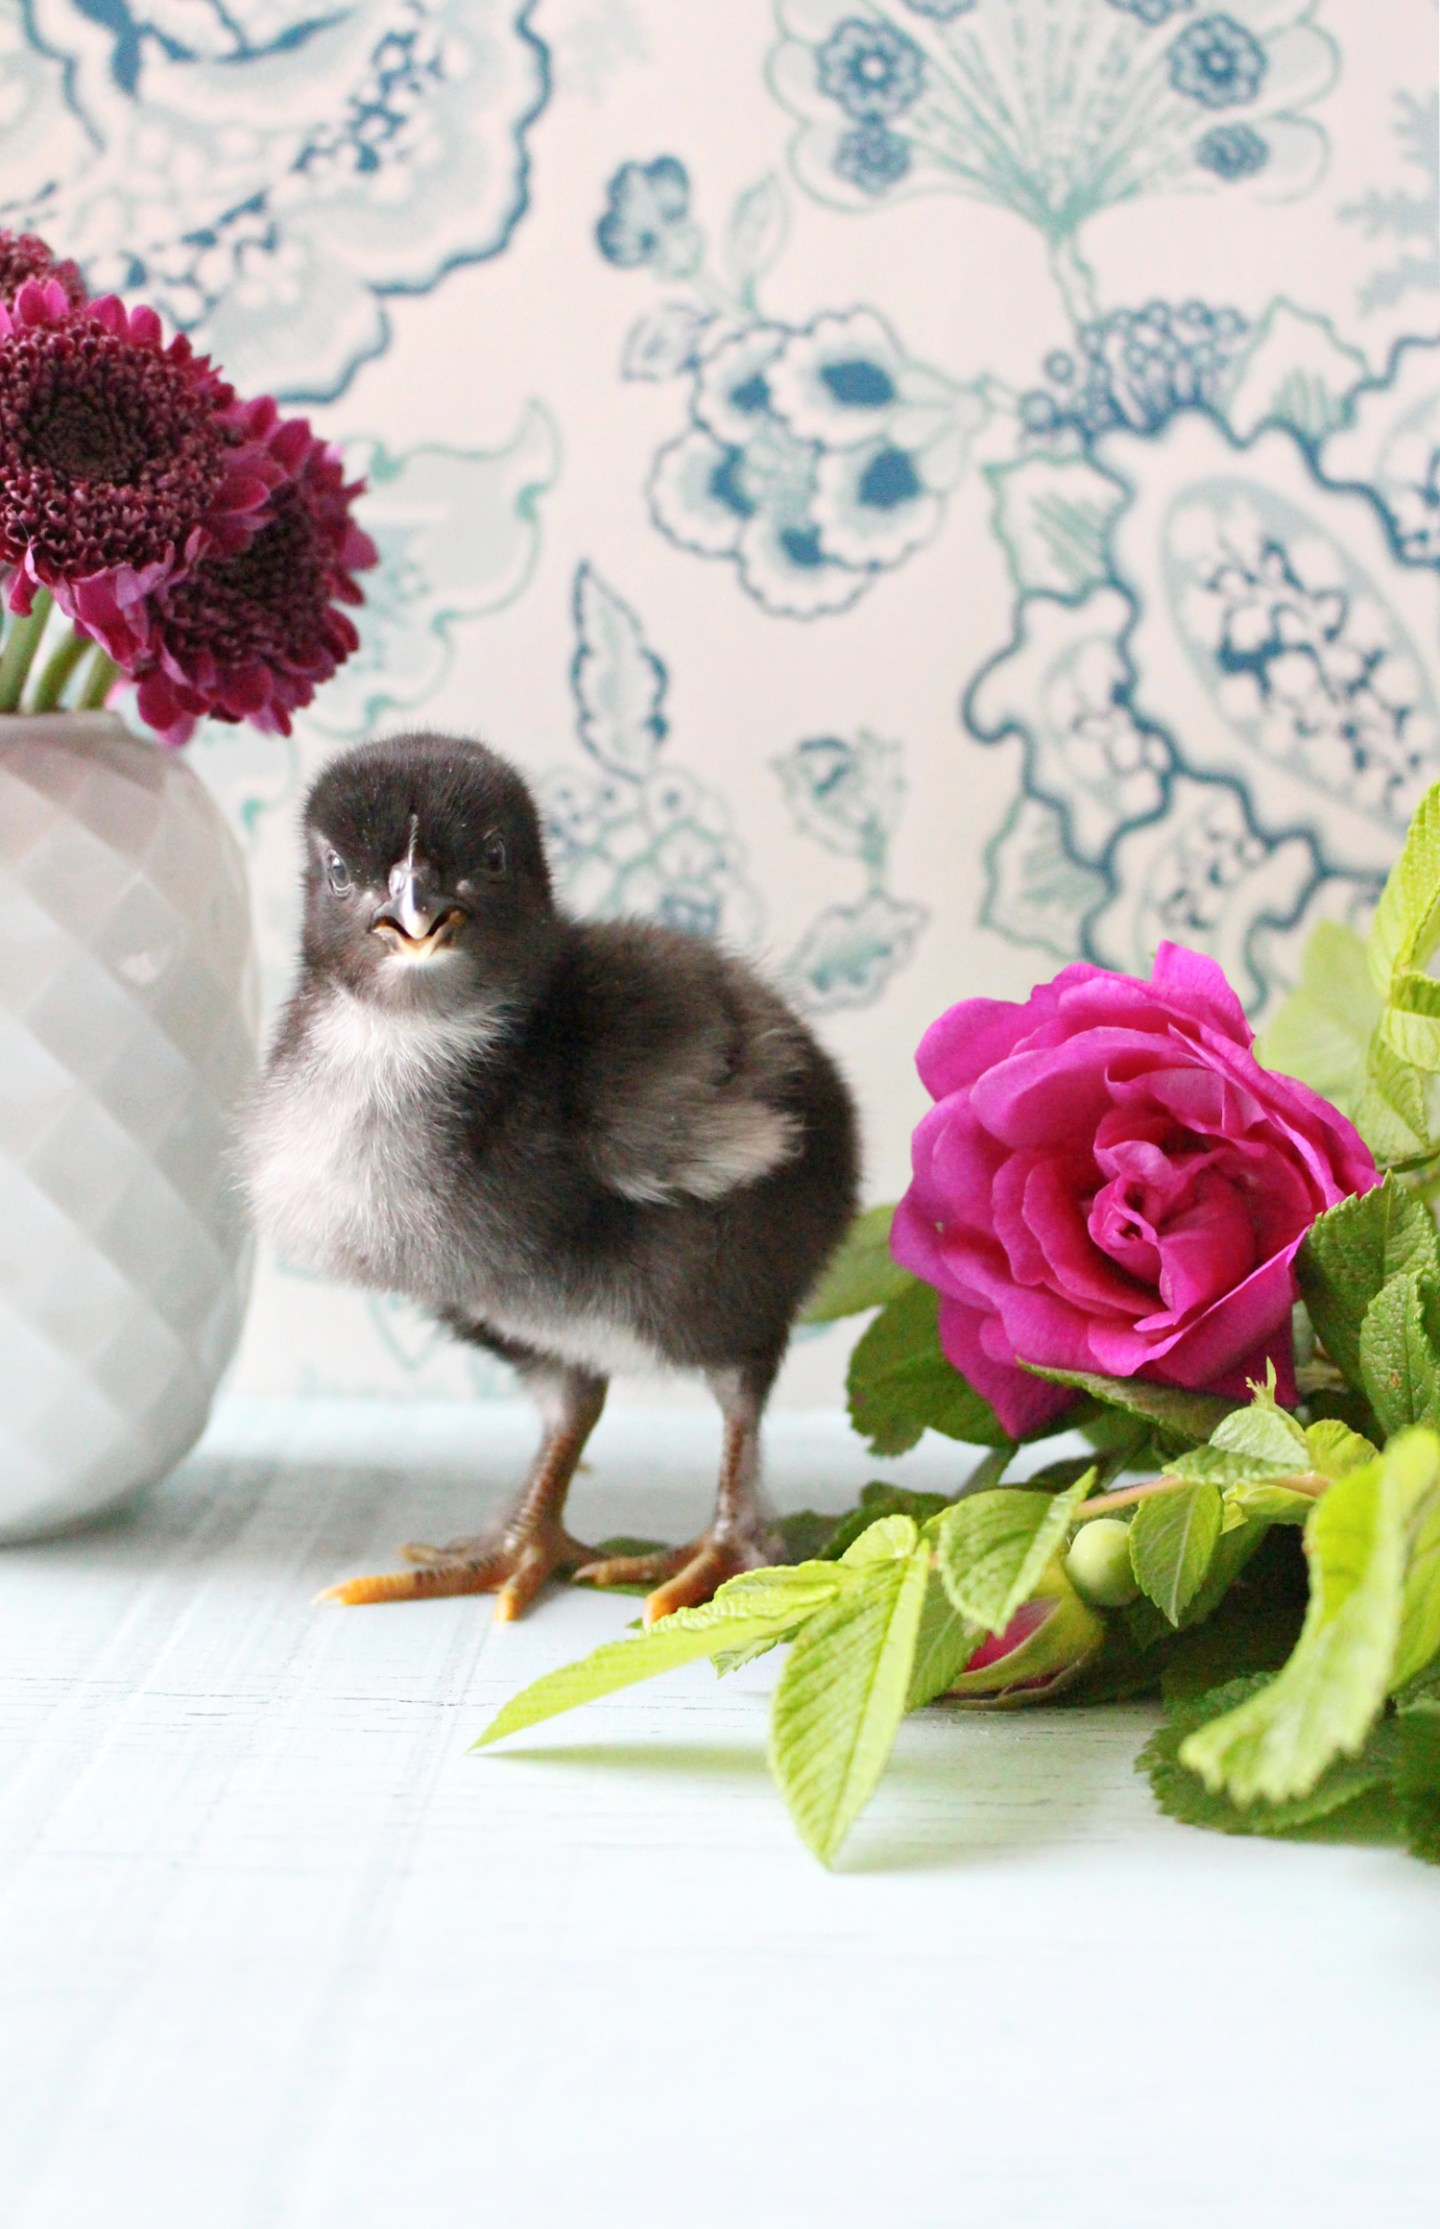 Day Old chick photos